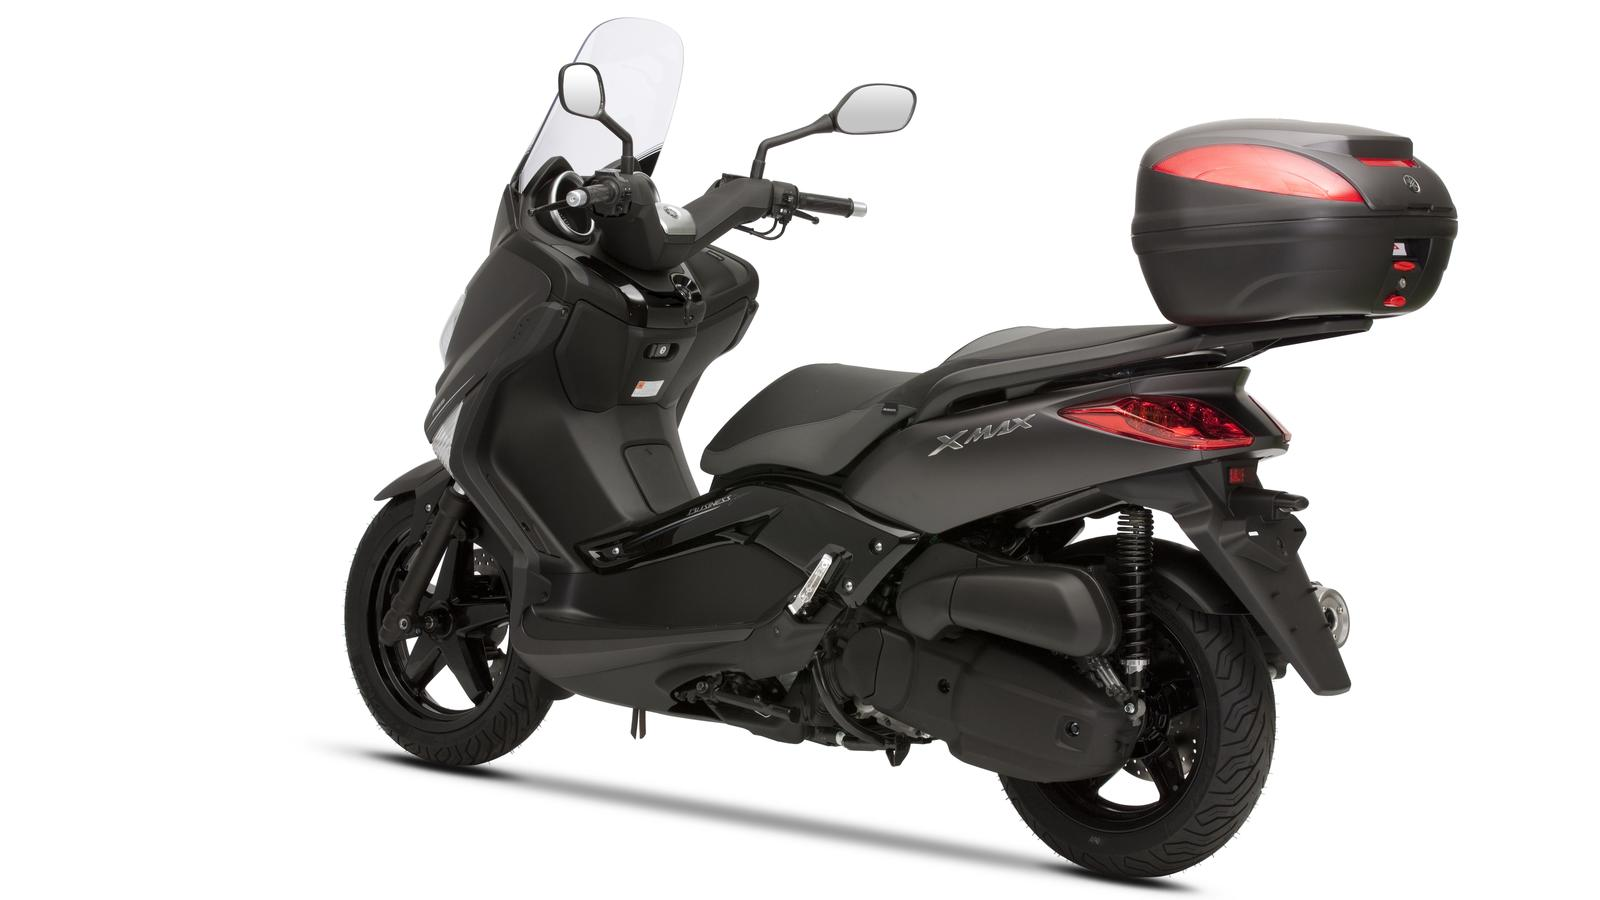 2011 Yamaha X-Max 125 ABS Business #1